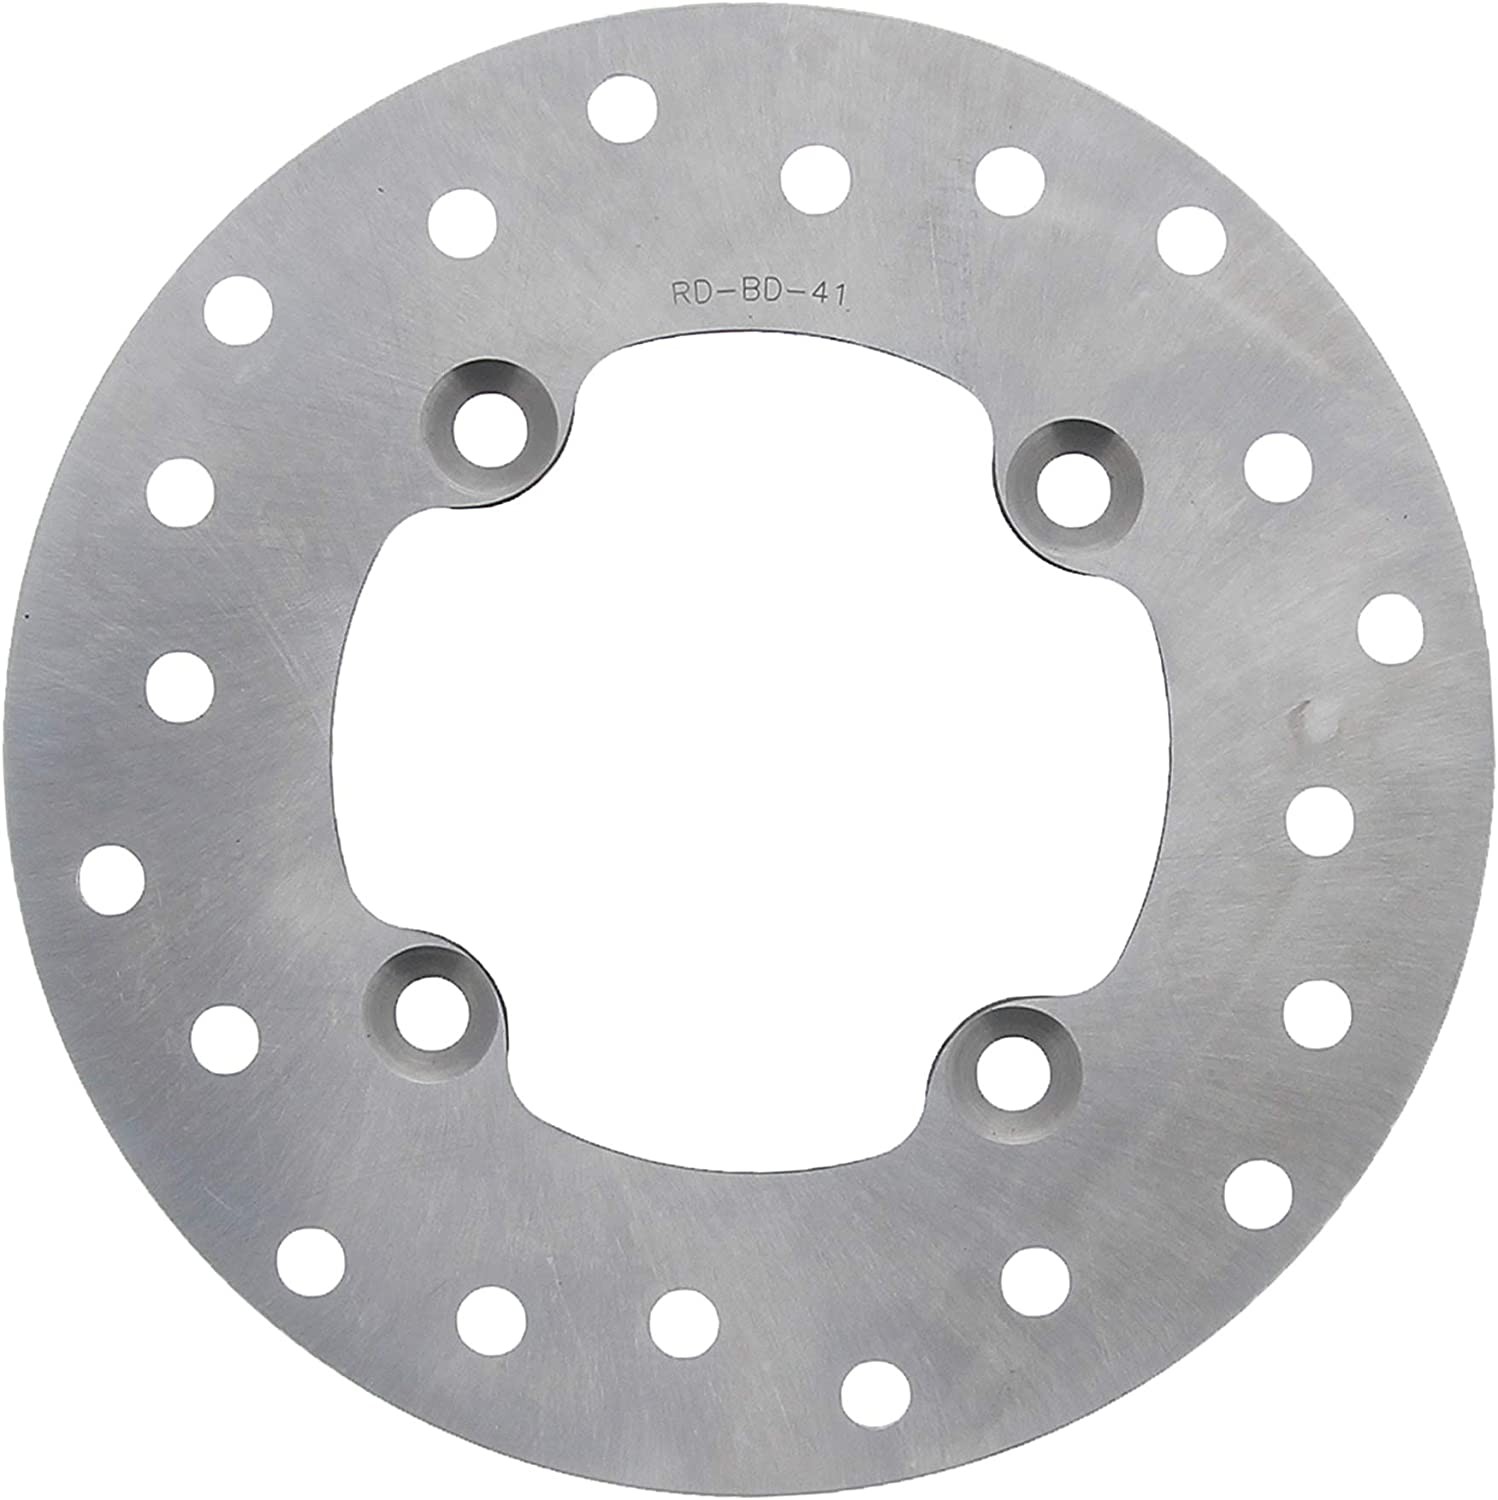 2011 2012 Super beauty product restock quality top! fits Can-Am Outlander XMR Disc Brake Rotor supreme Rear 800R